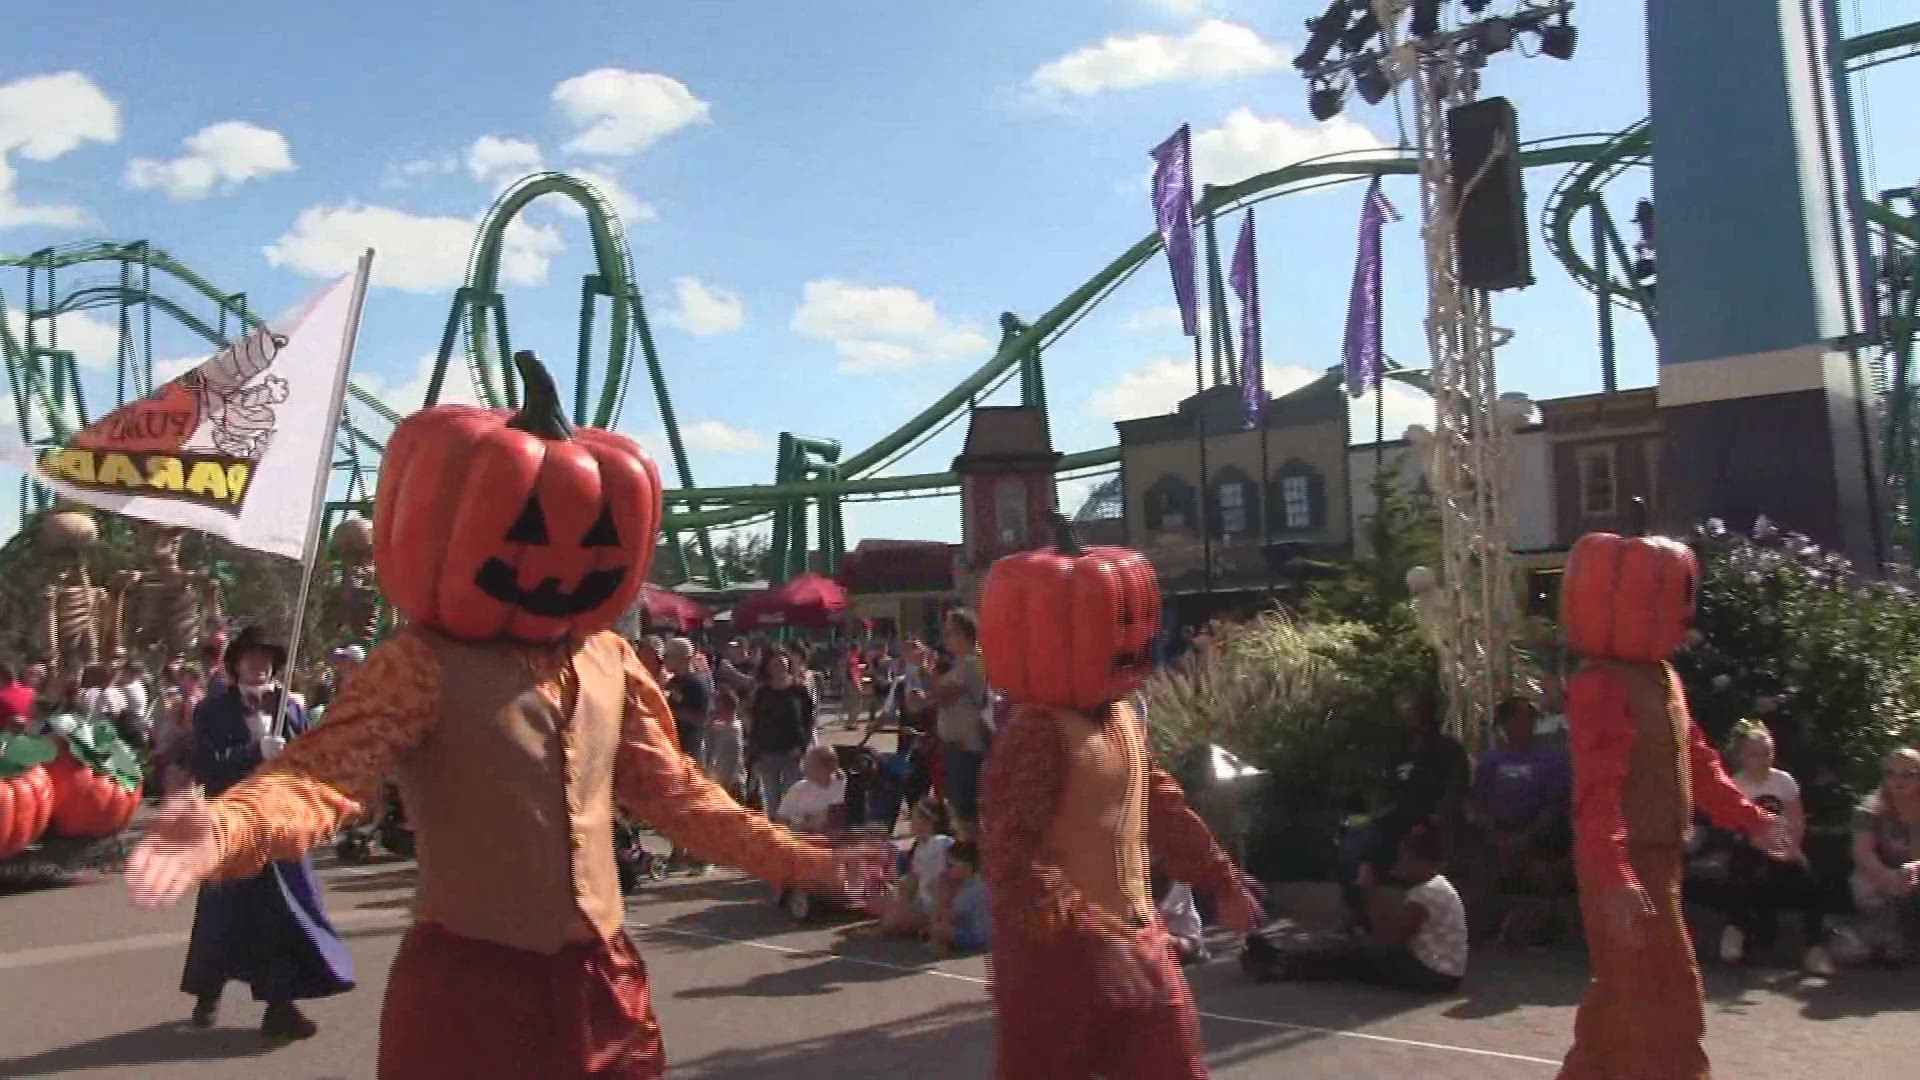 San Angelo Halloween Events 2020 Will Cedar Point have HalloWeekends this year? Event canceled